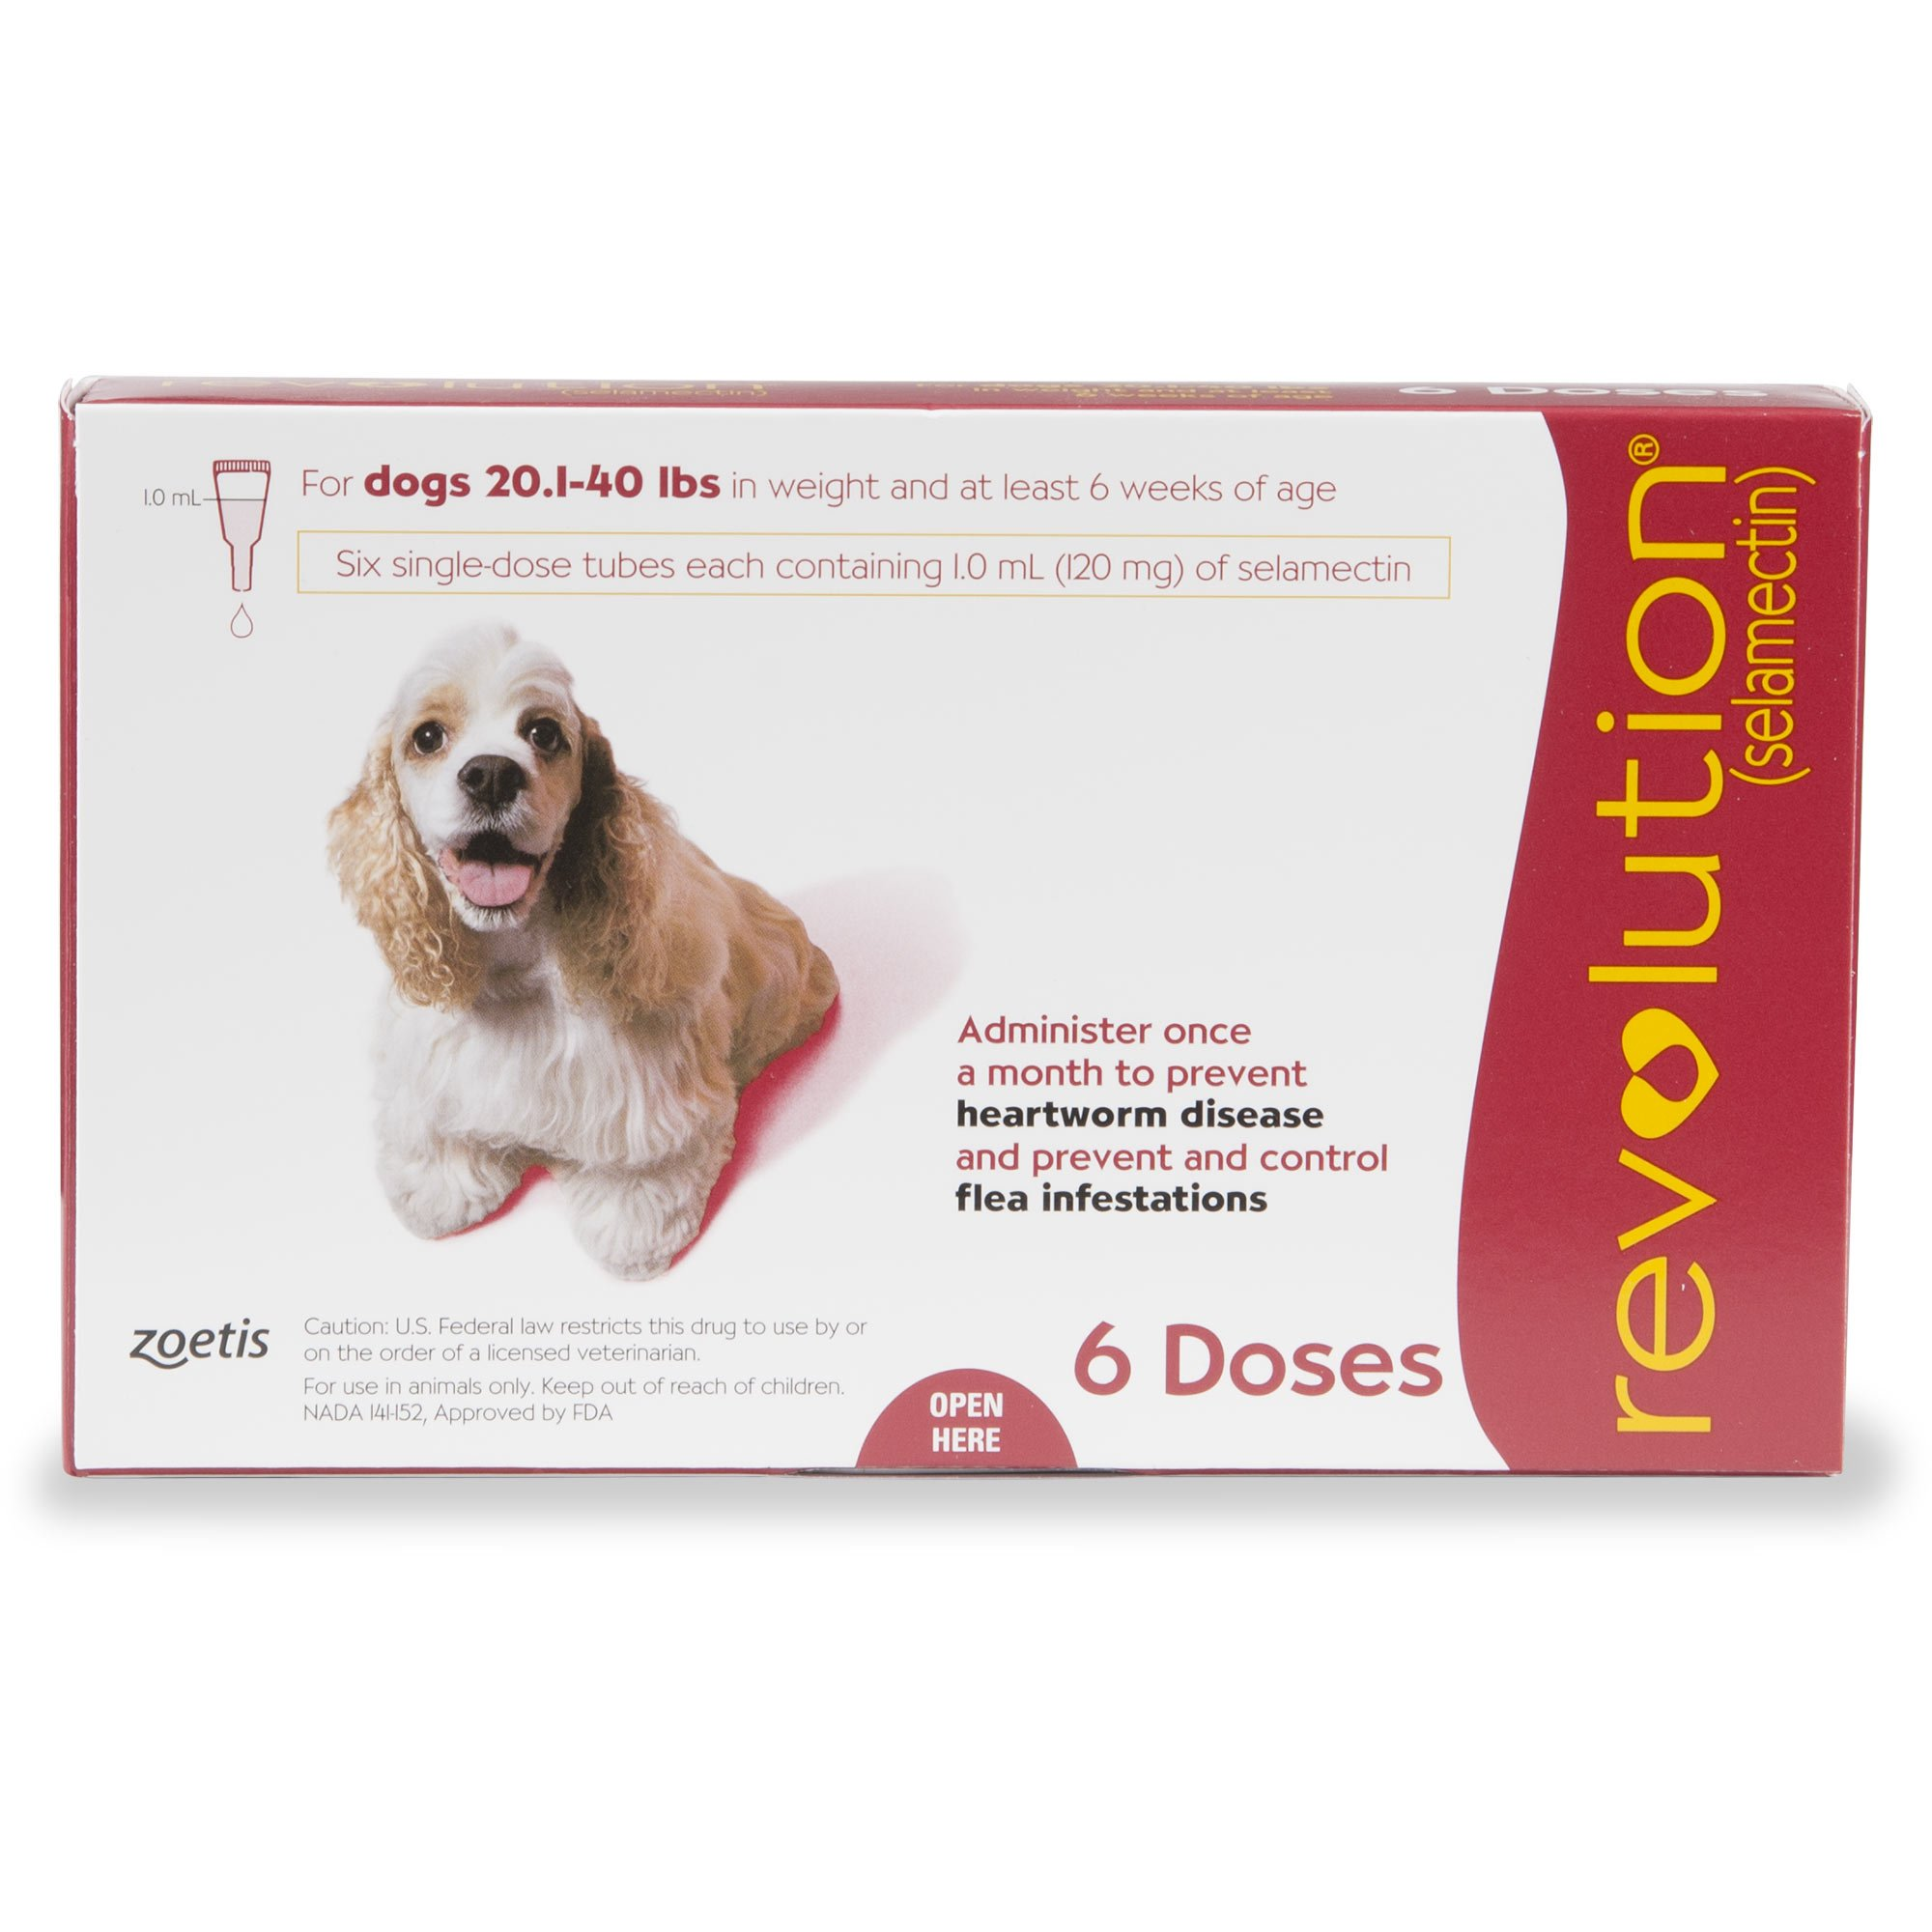 Revolution Topical Solution for Dogs 20 1-40 lbs  - Red | Petco